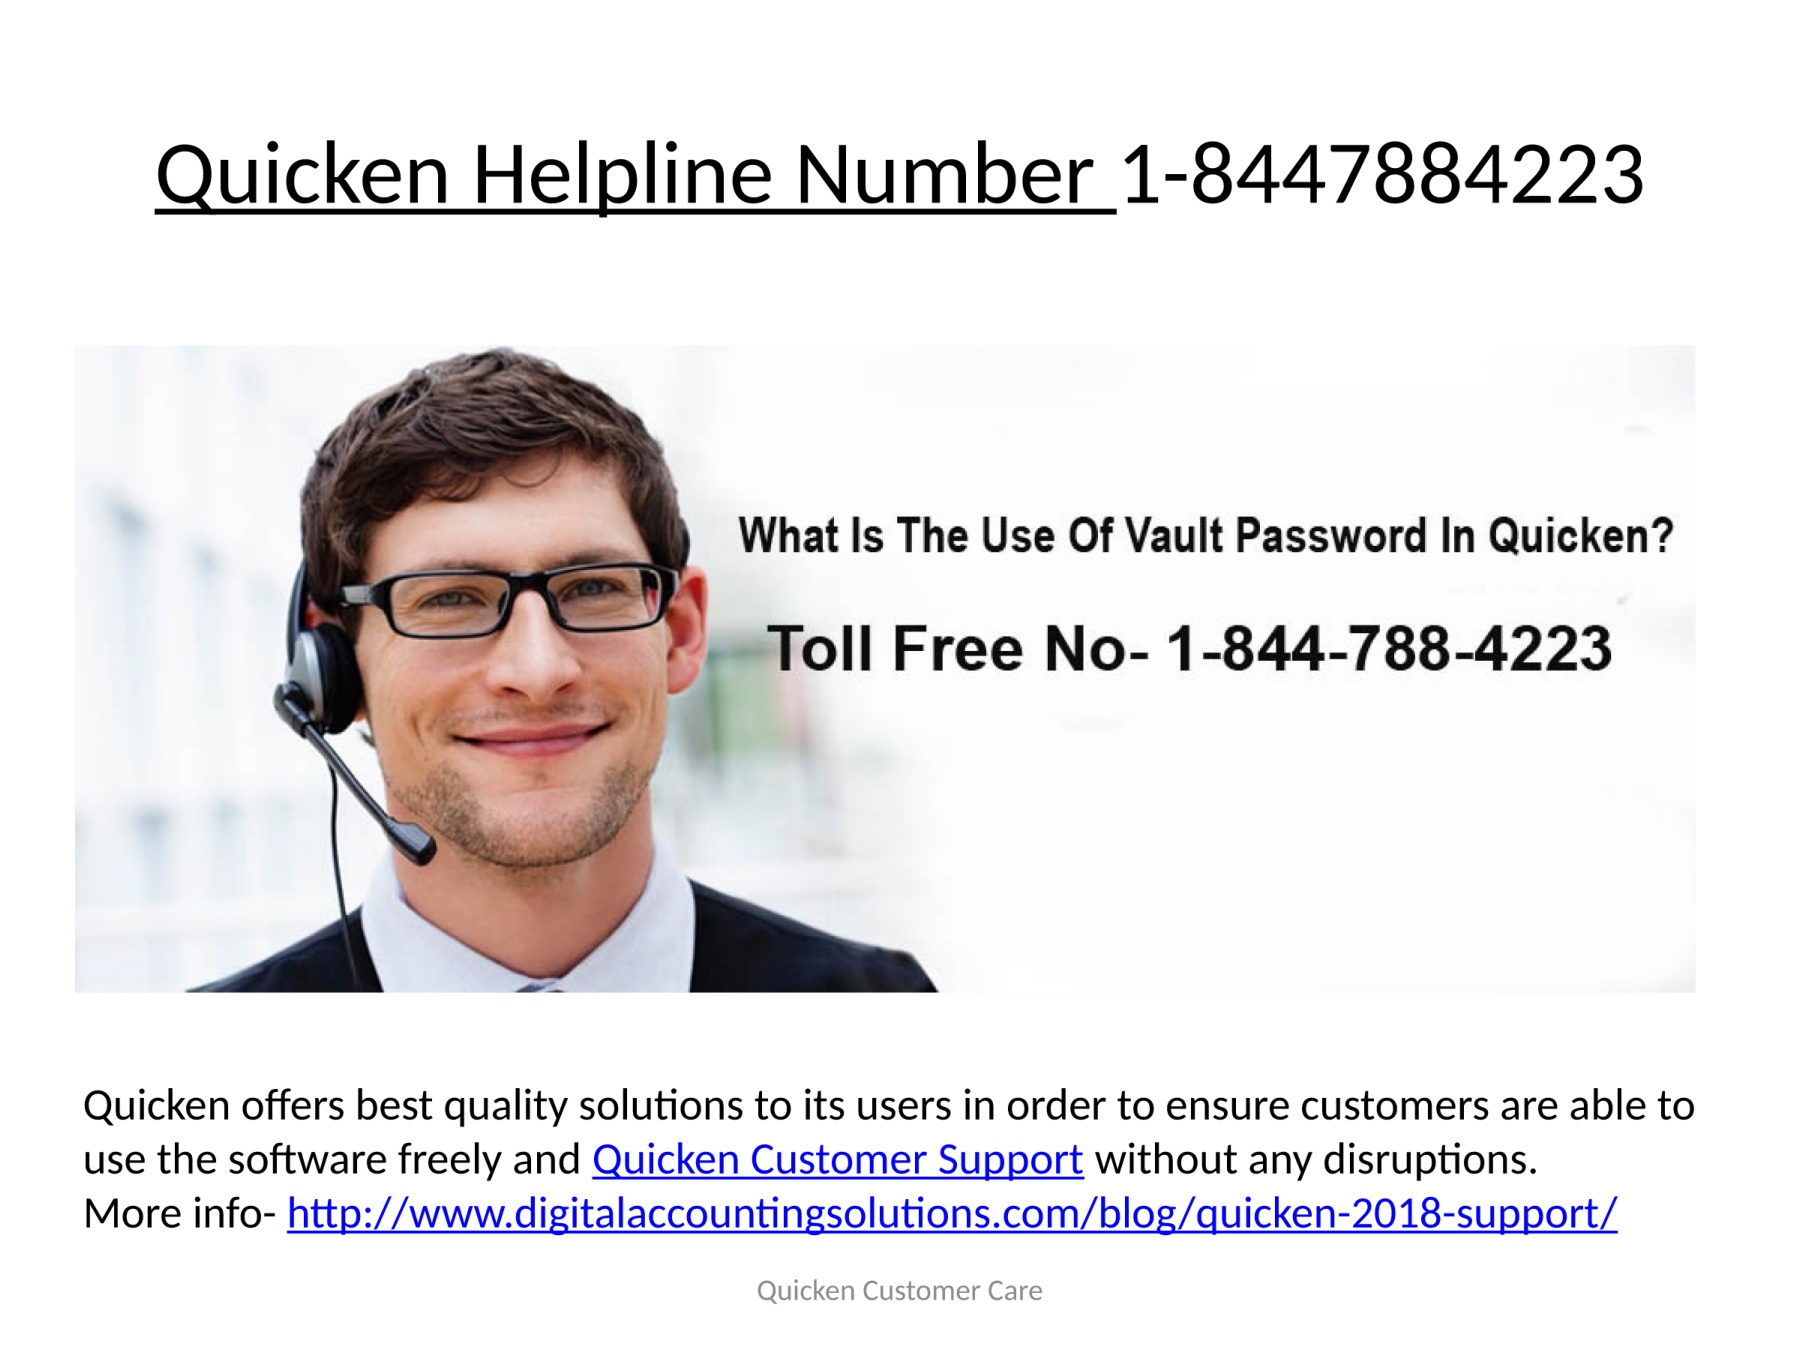 Quicken Technical Support Number 1-8447884223 Pages 1 - 5